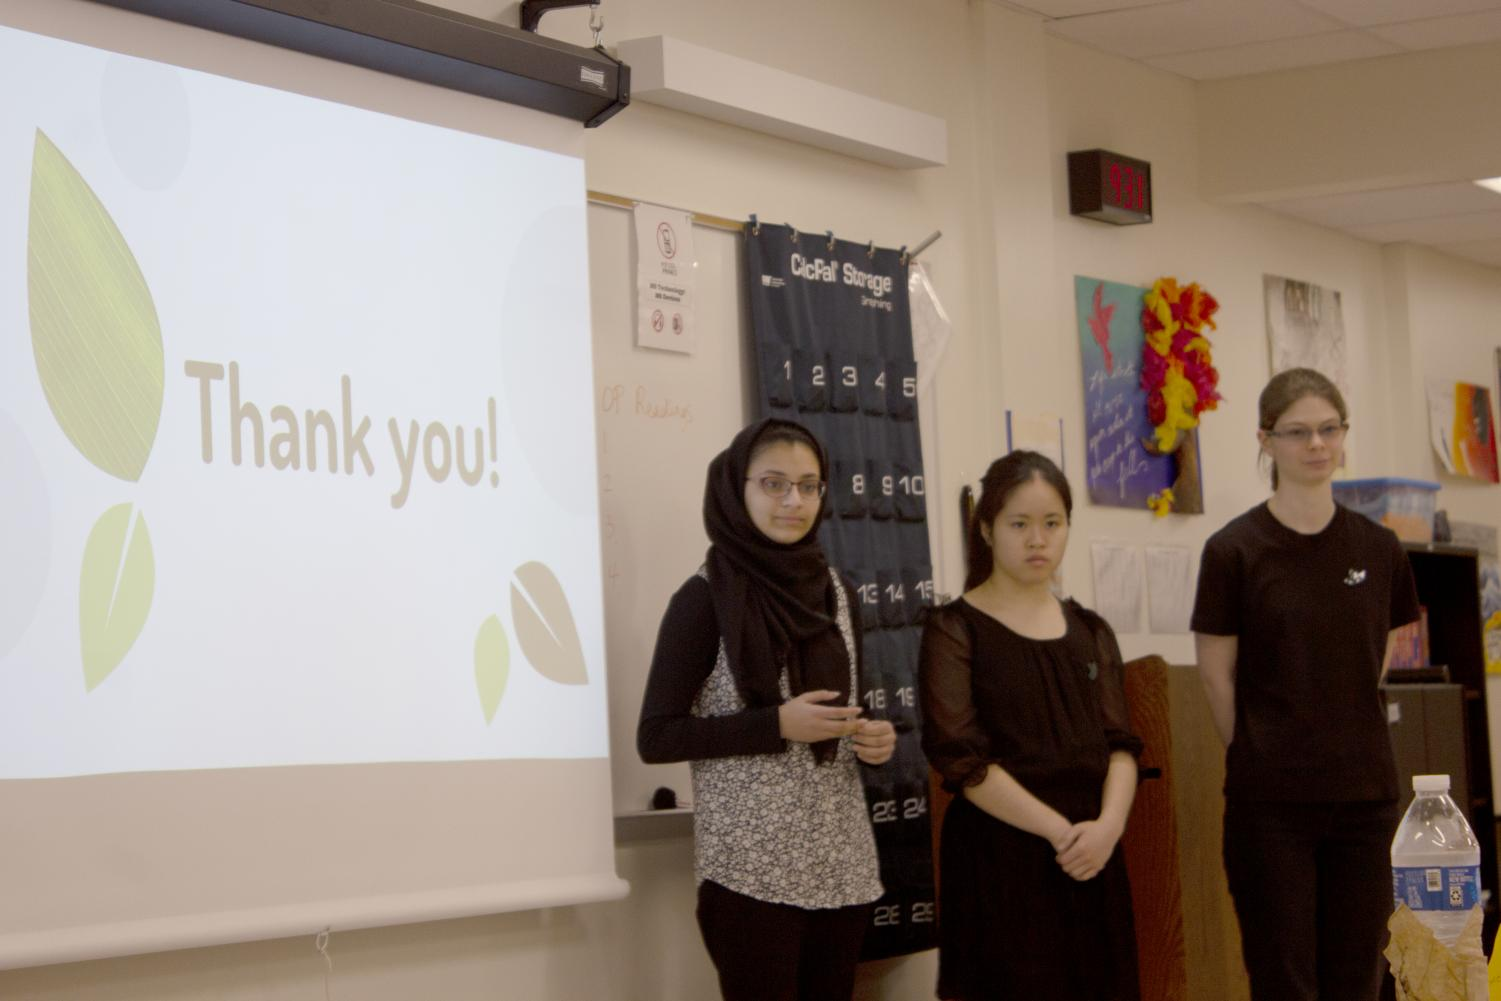 Fatimah+Shah+%2722%2C+Amy+Yamamoto+%2722%2C+and+Naomi+Sheppard+%2722+present+their+shark+tank+product.+Their+product+was+a+lawnmower+that+mowed+the+lawn+without+humans+having+to+do+anything.